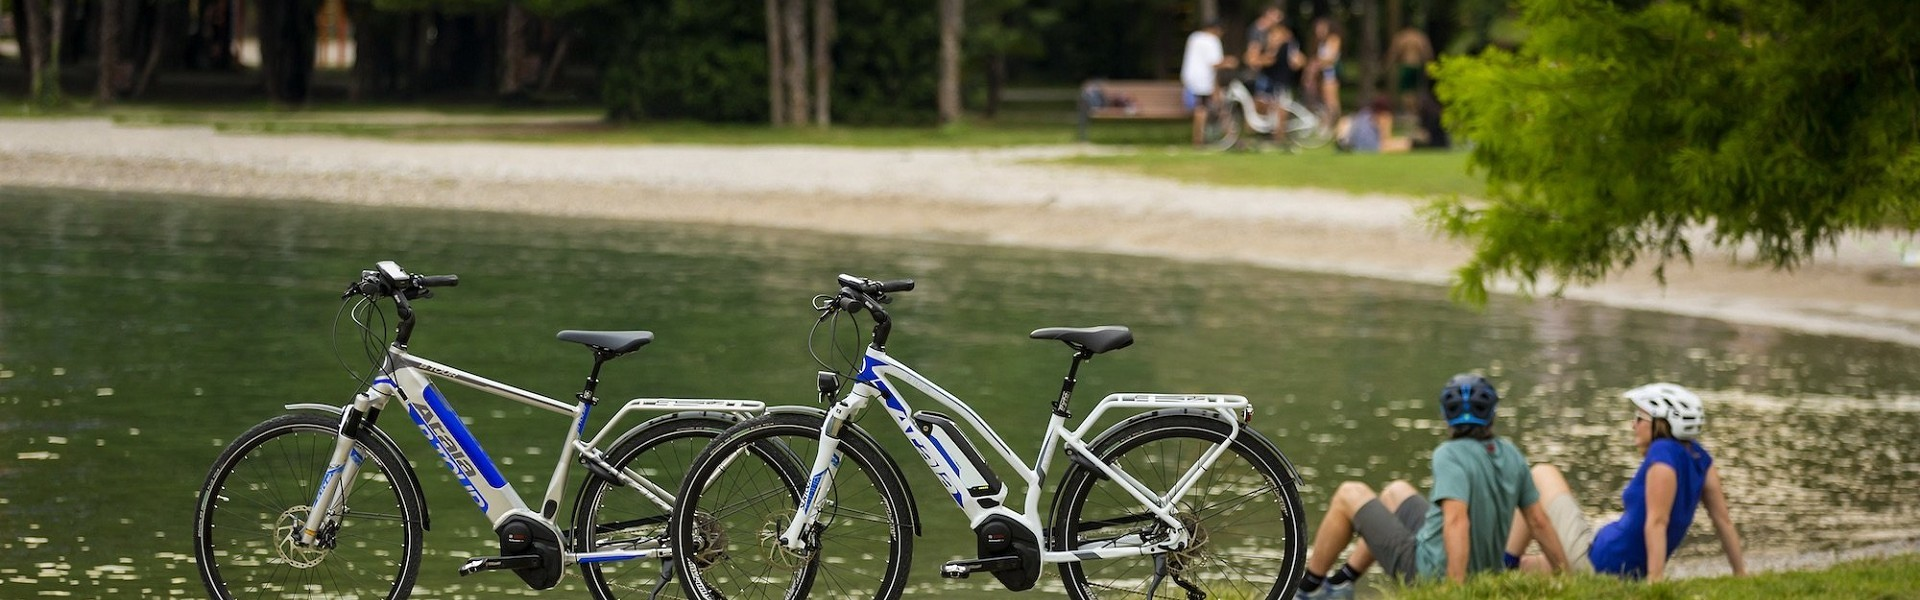 liguria cycleways and cycle routes | rent a touring bike | international bike rental